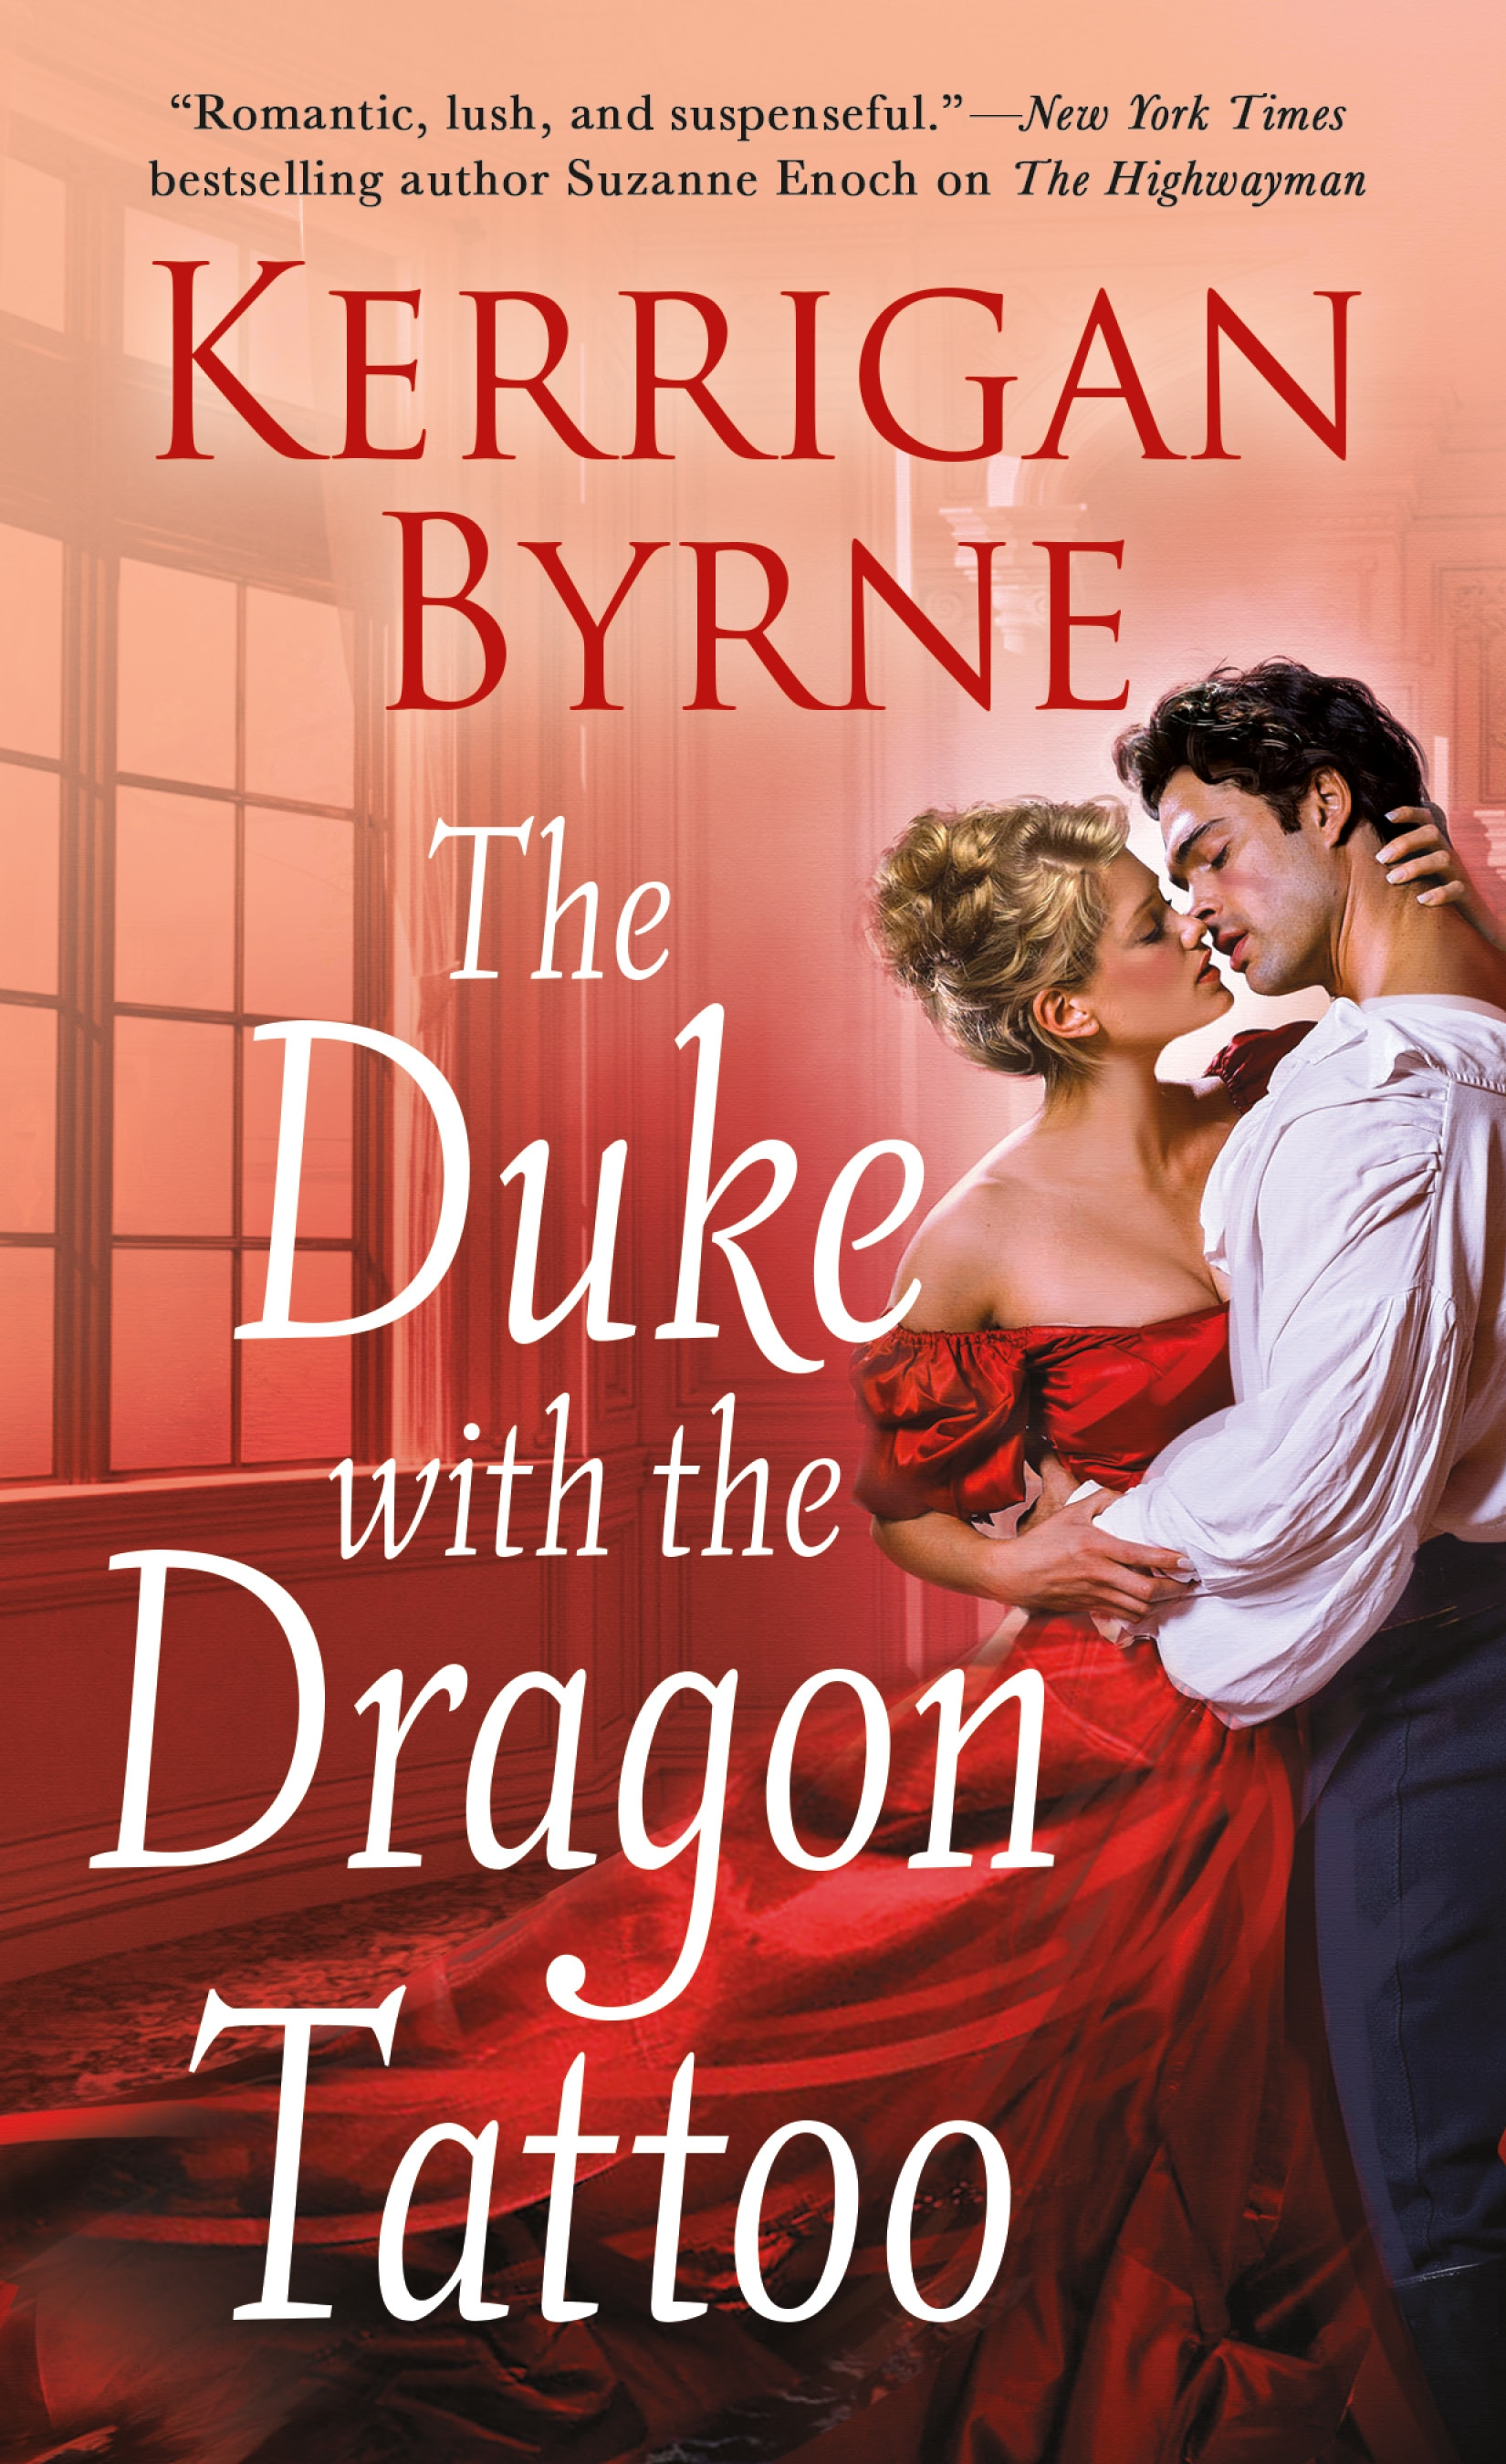 Duke with dragon Tattoo cover